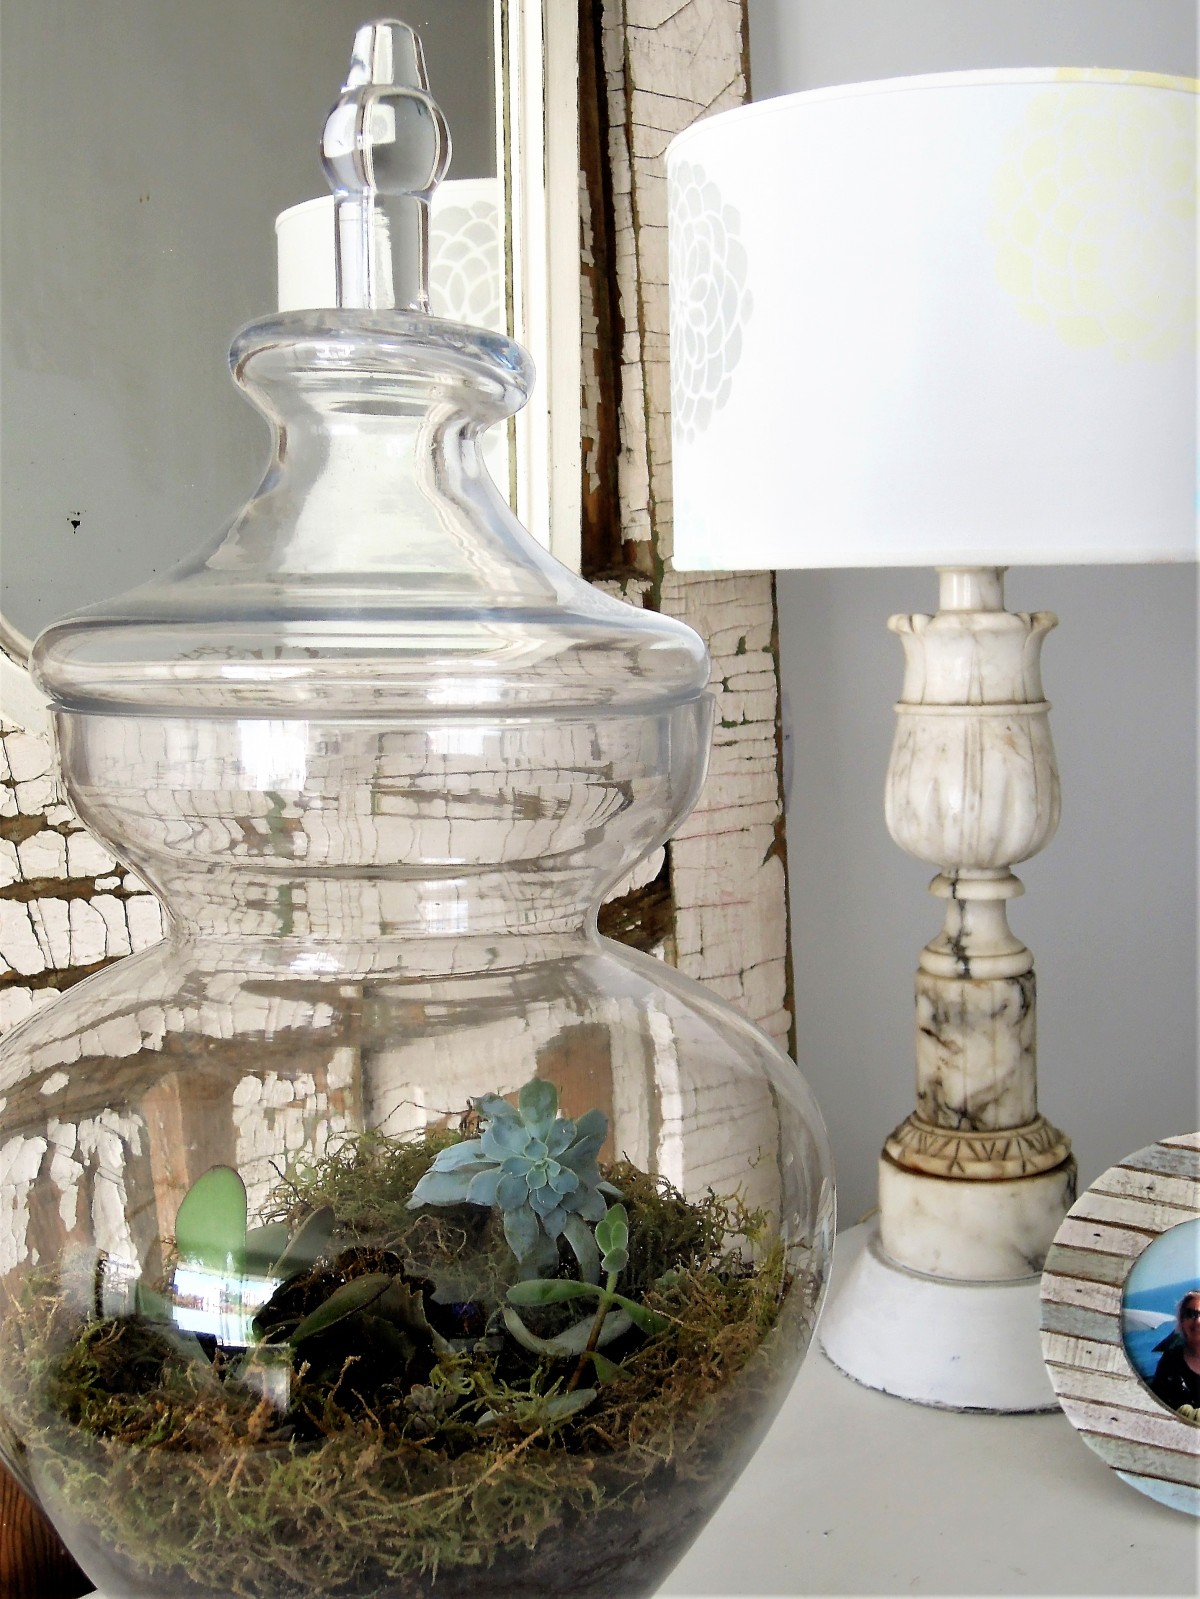 terrario, terrarium, idea, diy, glass